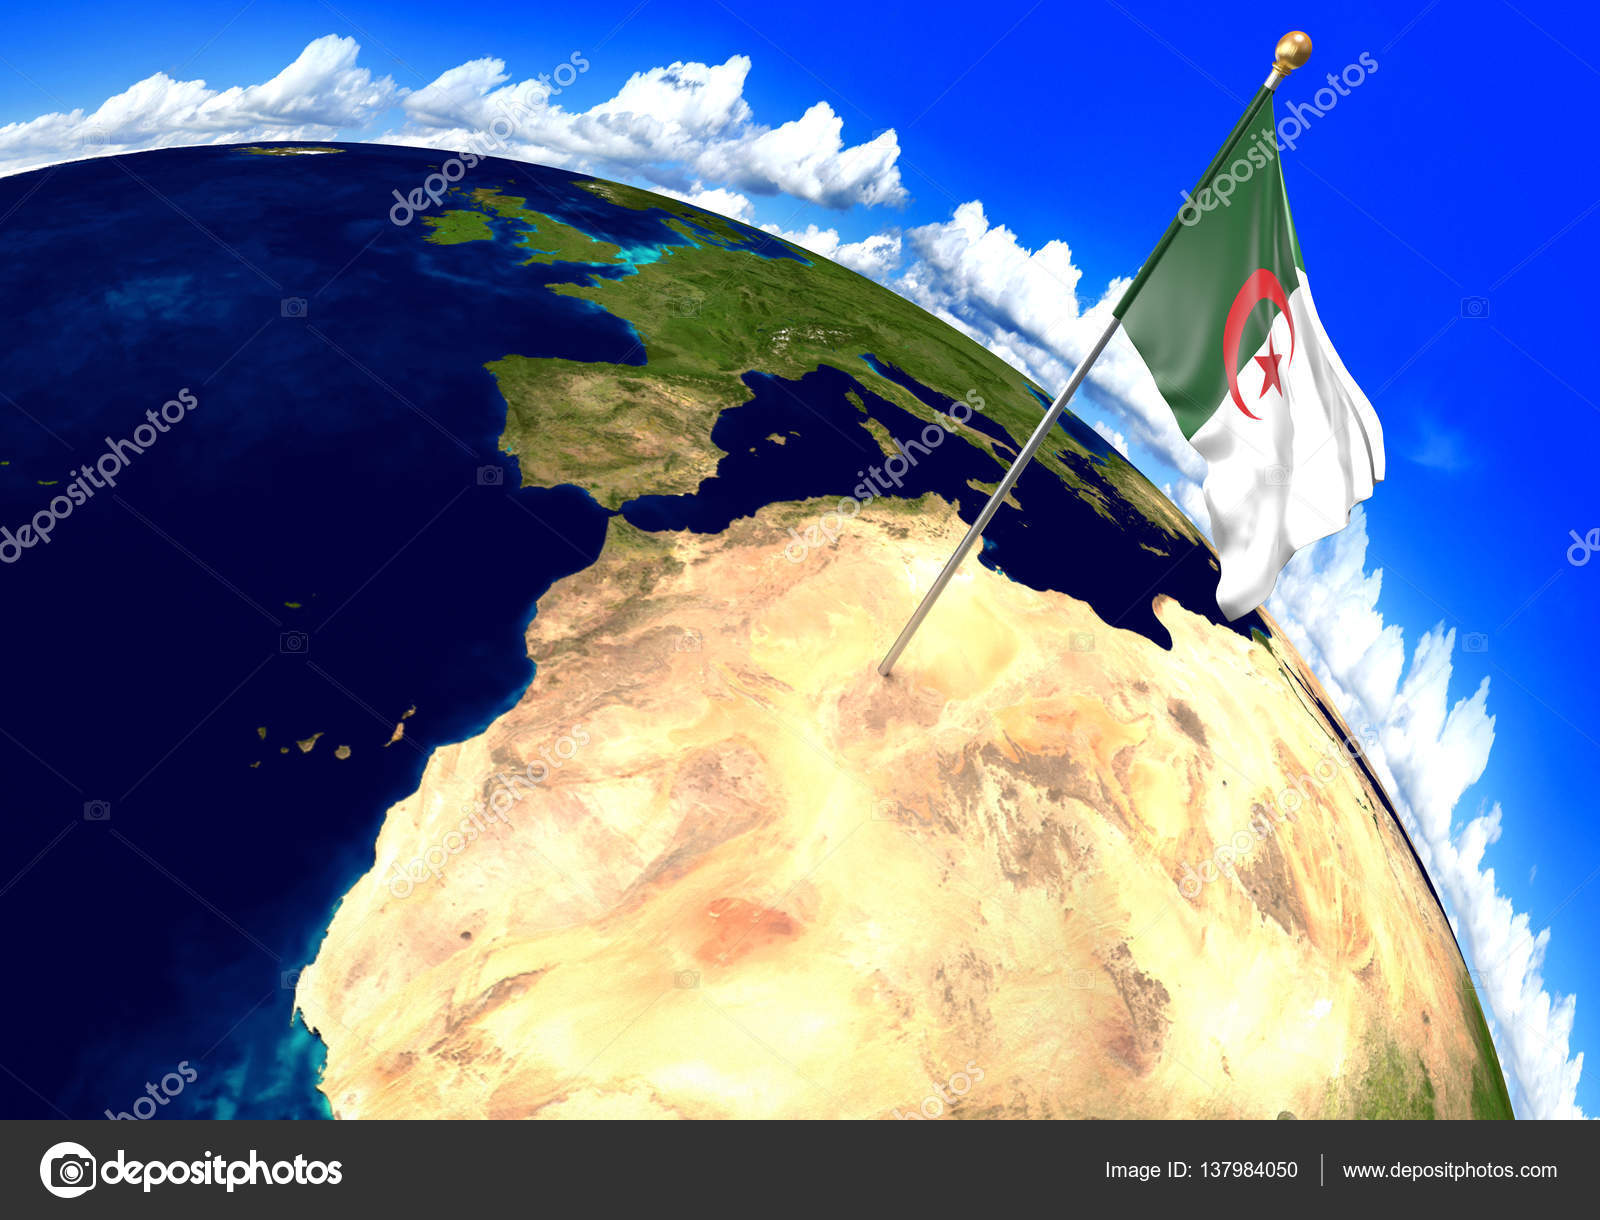 Algeria Location On World Map.Algeria National Flag Marking The Country Location On World Map 3d